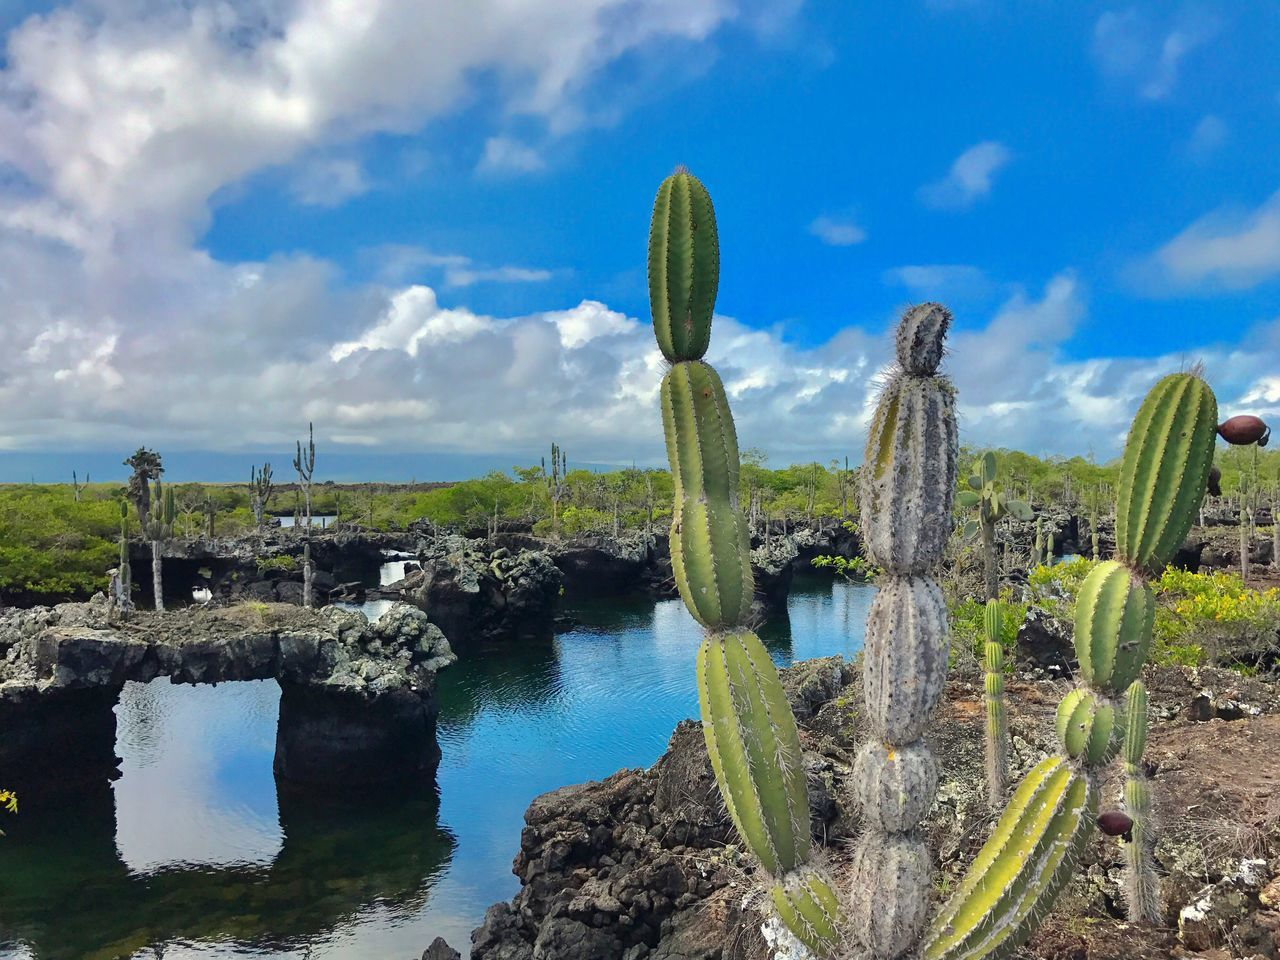 sky, no people, cactus, nature, outdoors, day, cloud - sky, growth, tranquil scene, beauty in nature, tranquility, scenics, rock - object, water, green color, travel destinations, saguaro cactus